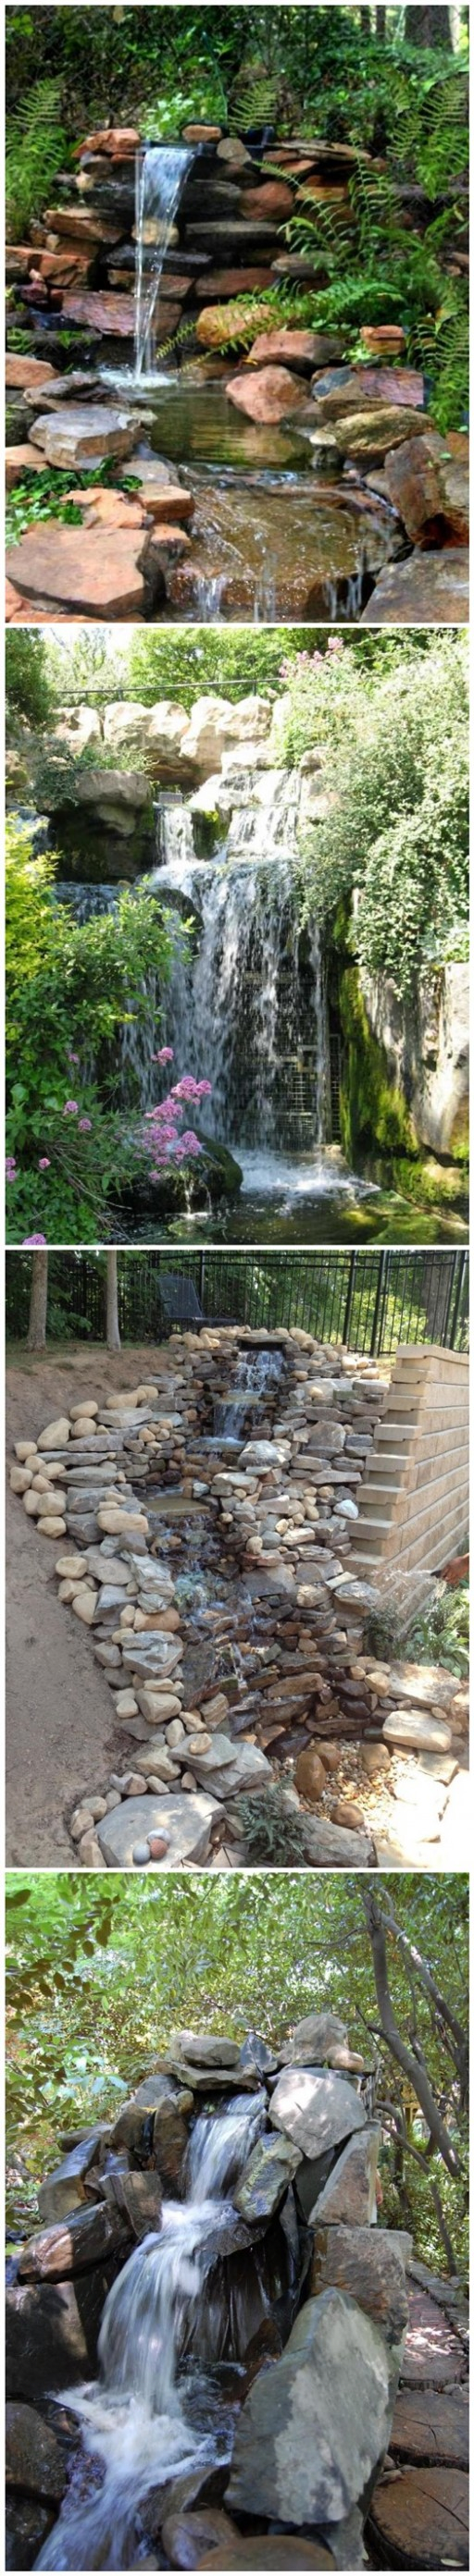 How to build a garden waterfall pond diy tag for Diy backyard pond